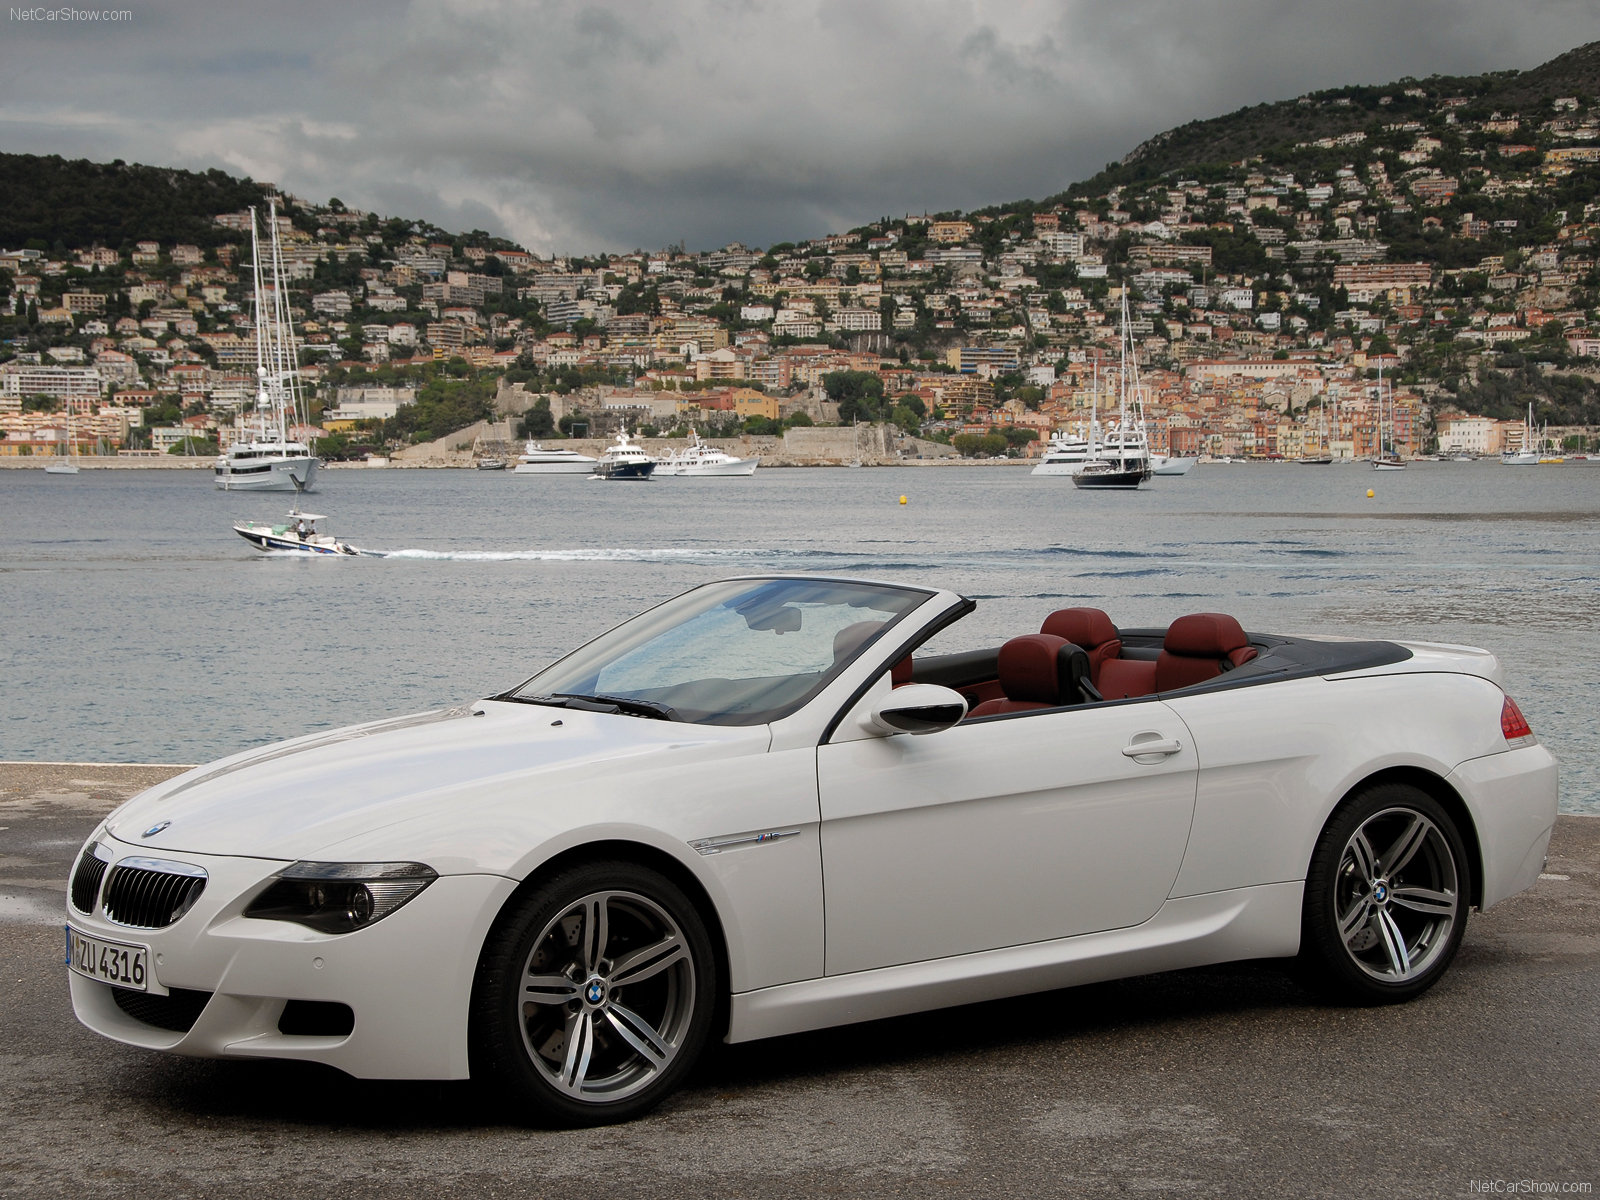 BMW M6 E64 Convertible picture # 63899 | BMW photo gallery ...